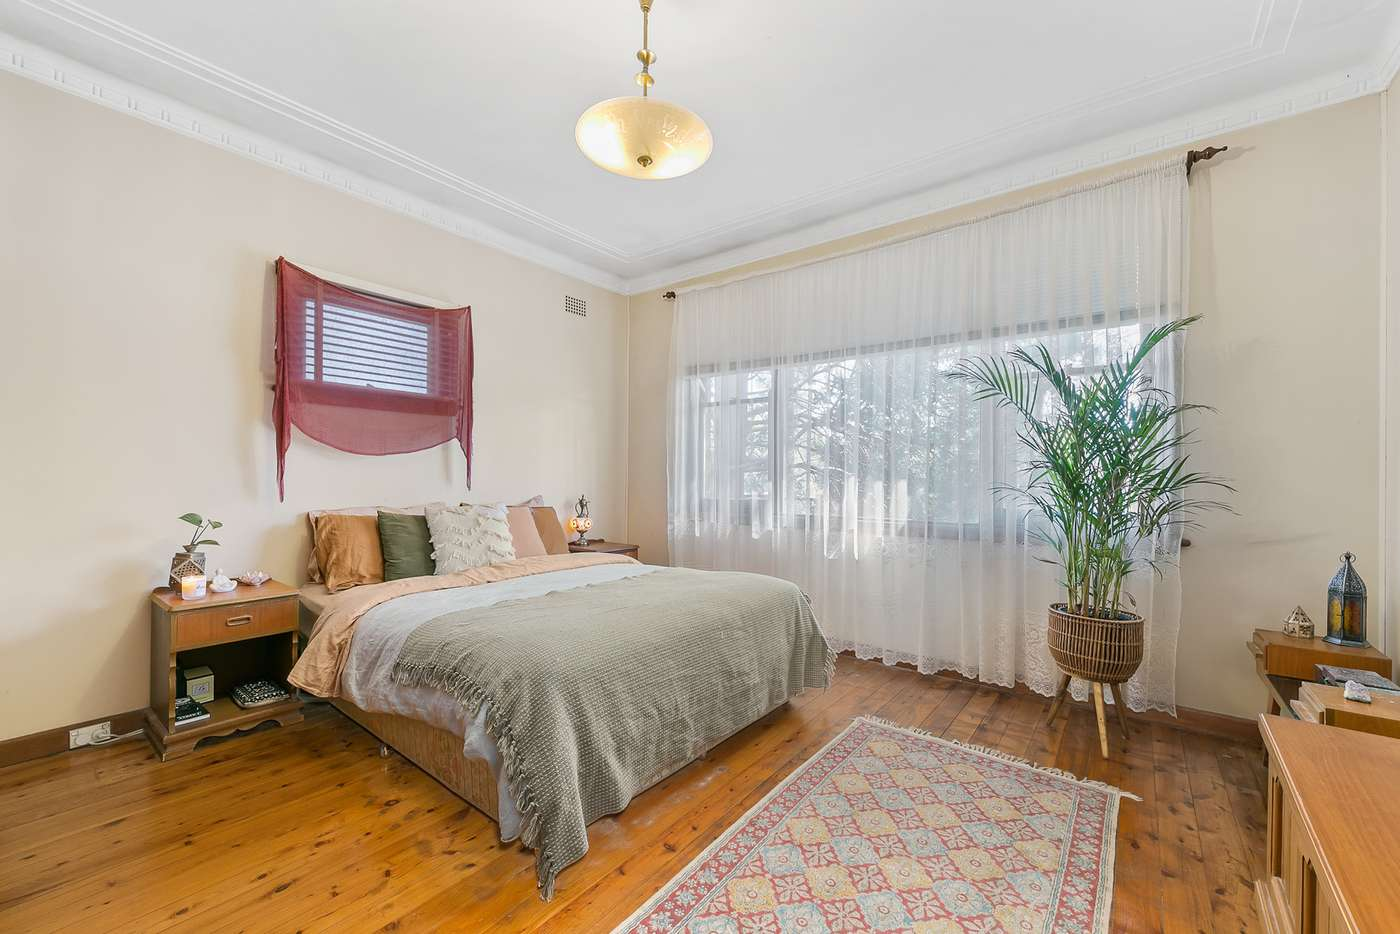 Sixth view of Homely house listing, 68 Kent Street, Epping NSW 2121